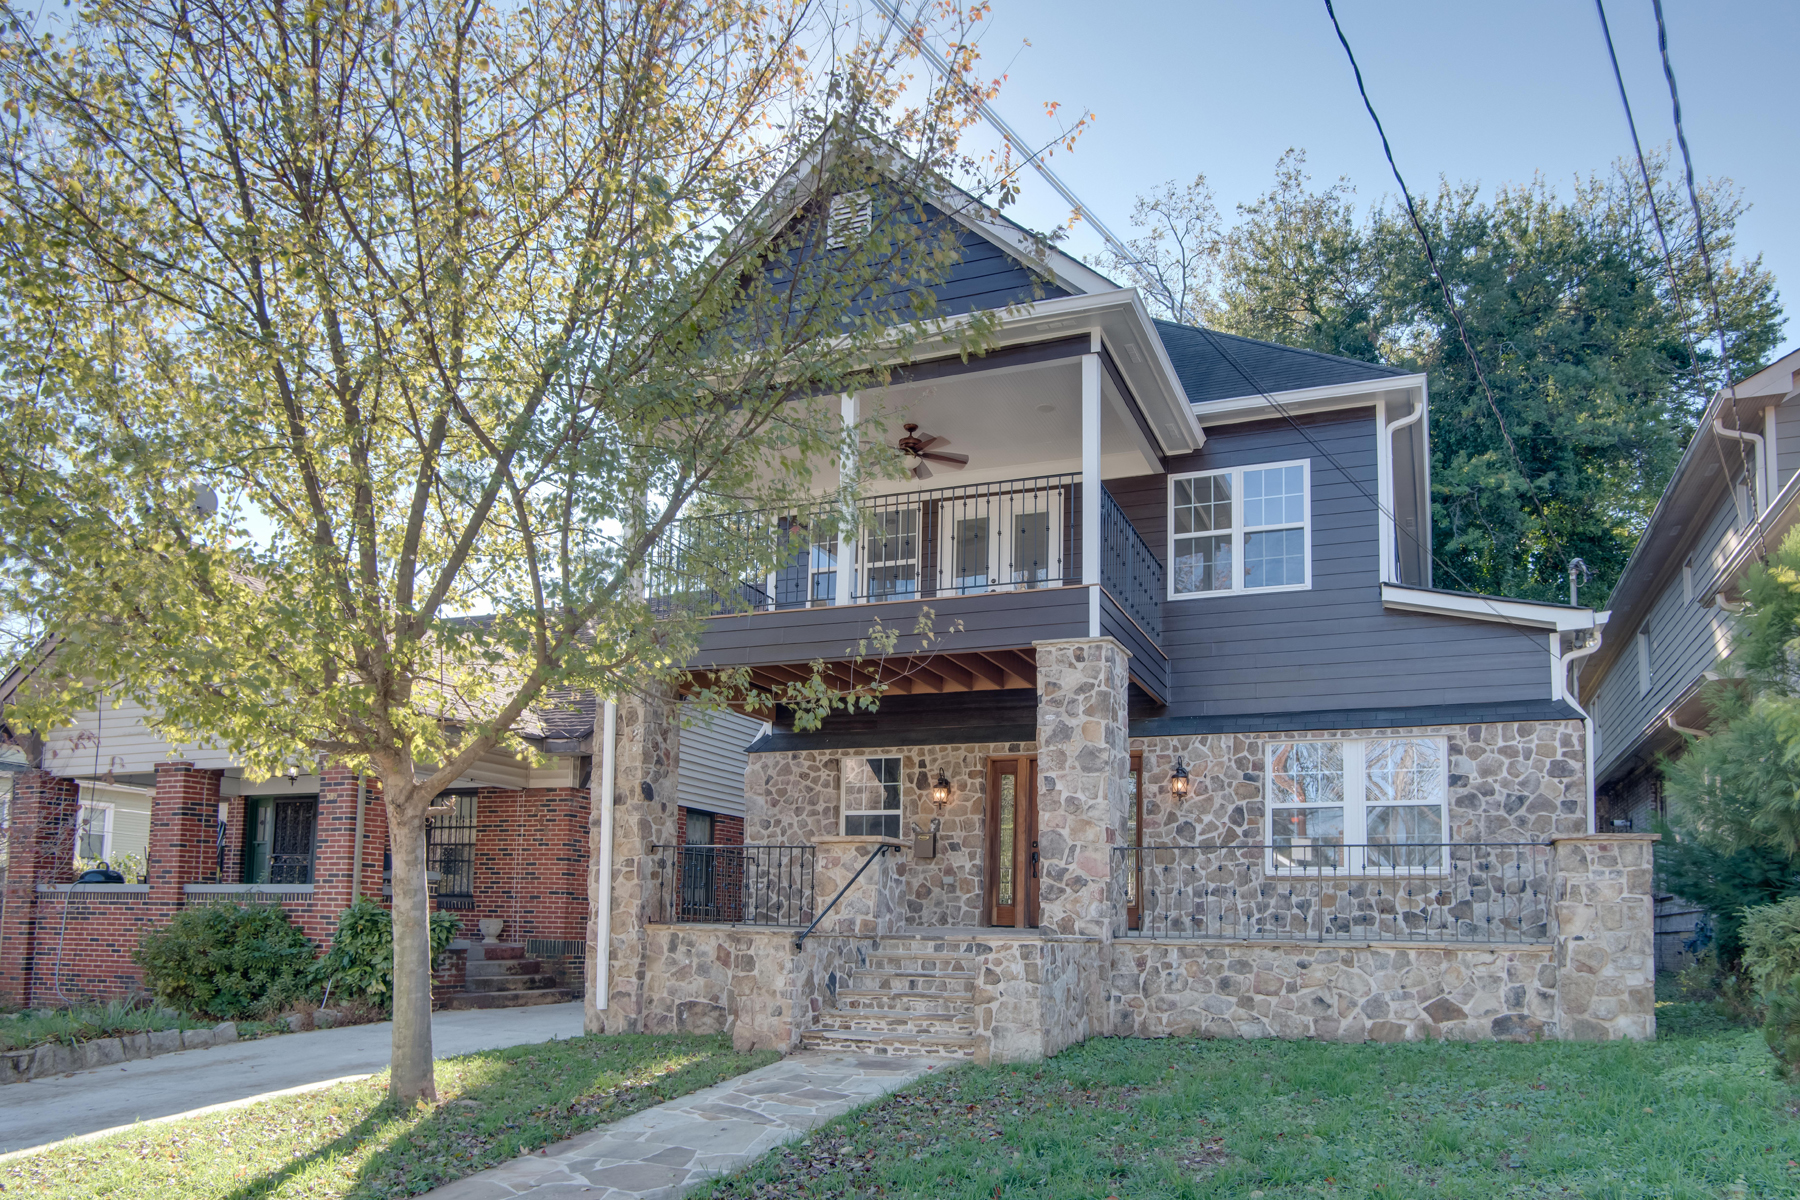 Vivienda unifamiliar por un Venta en Spacious Five Bedroom Home In Hot Old Fourth Ward 505 Angier Avenue NE Atlanta, Georgia 30308 Estados Unidos